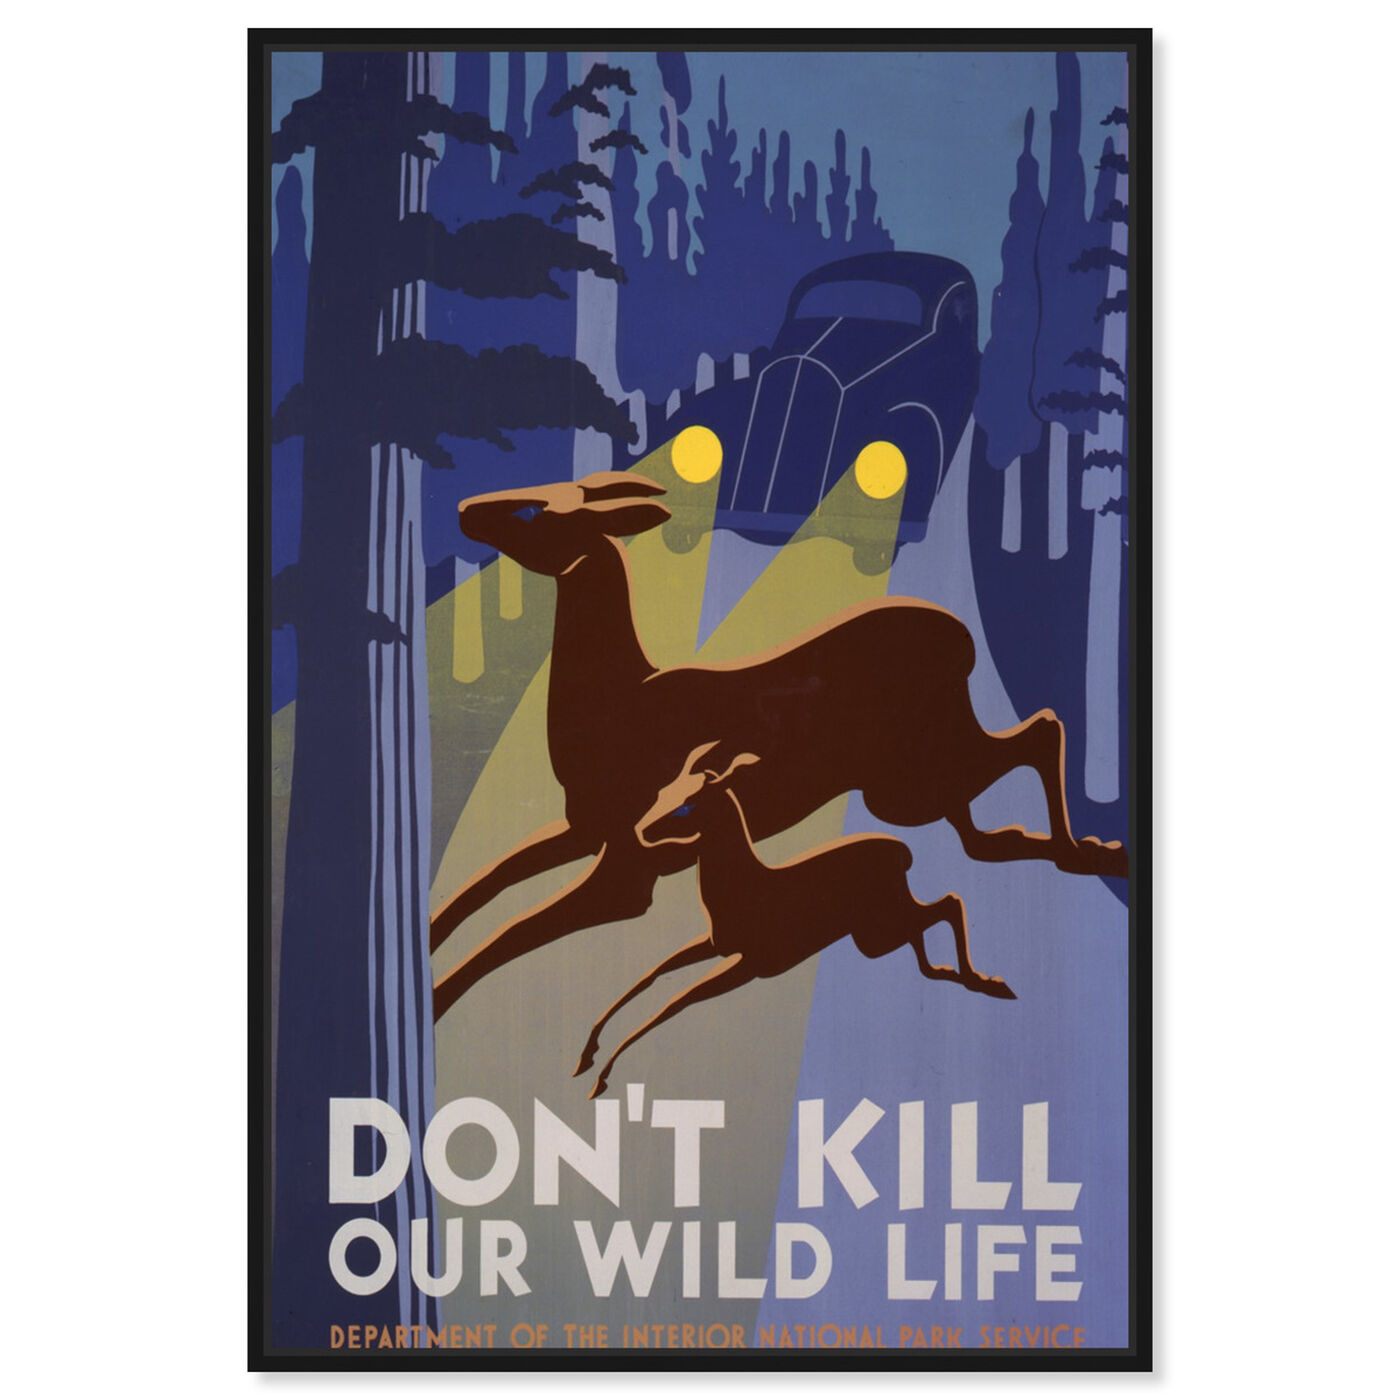 Front view of Don't Kill Our Wild Life featuring advertising and posters art.